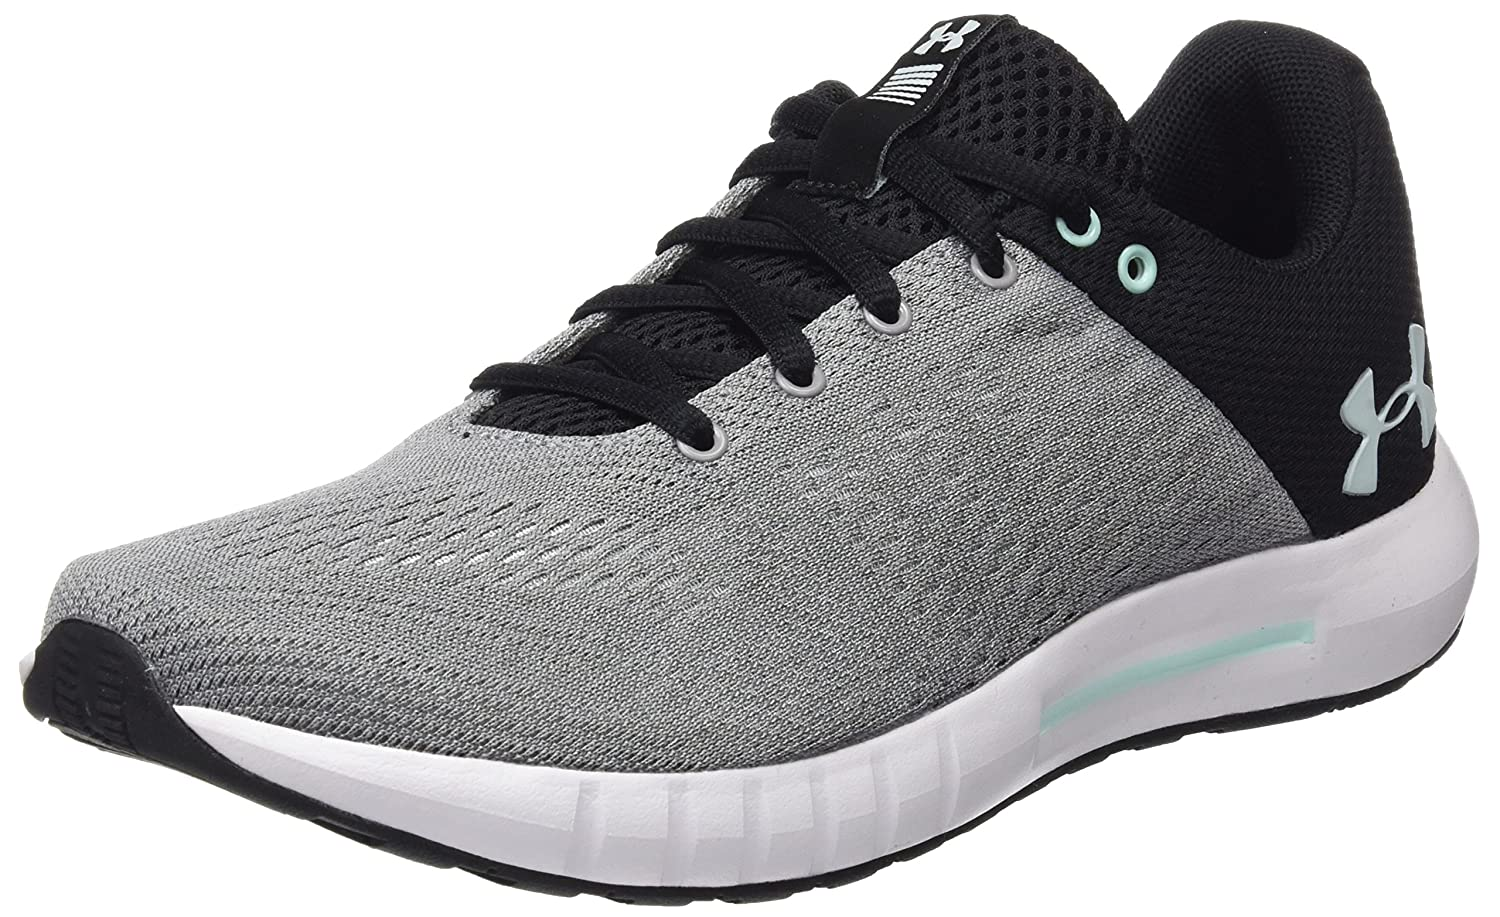 Under Armour Women's Micro G Pursuit Sneaker B071NT76G1 12 M US|Steel (106)/Rhino Gray